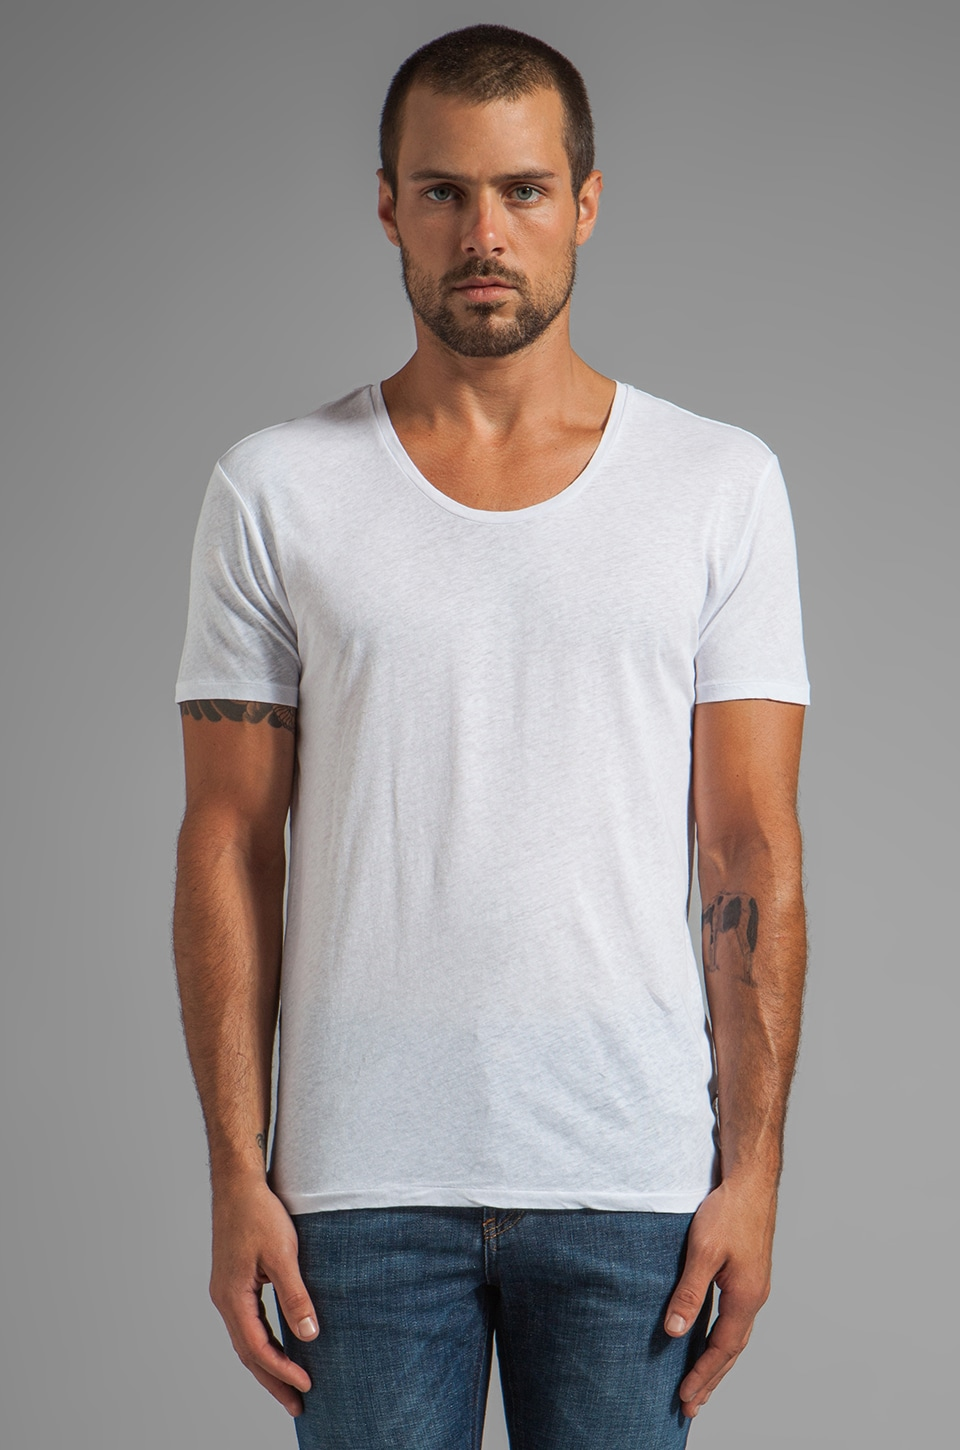 Scotch & Soda Home Alone Crew Tee in White